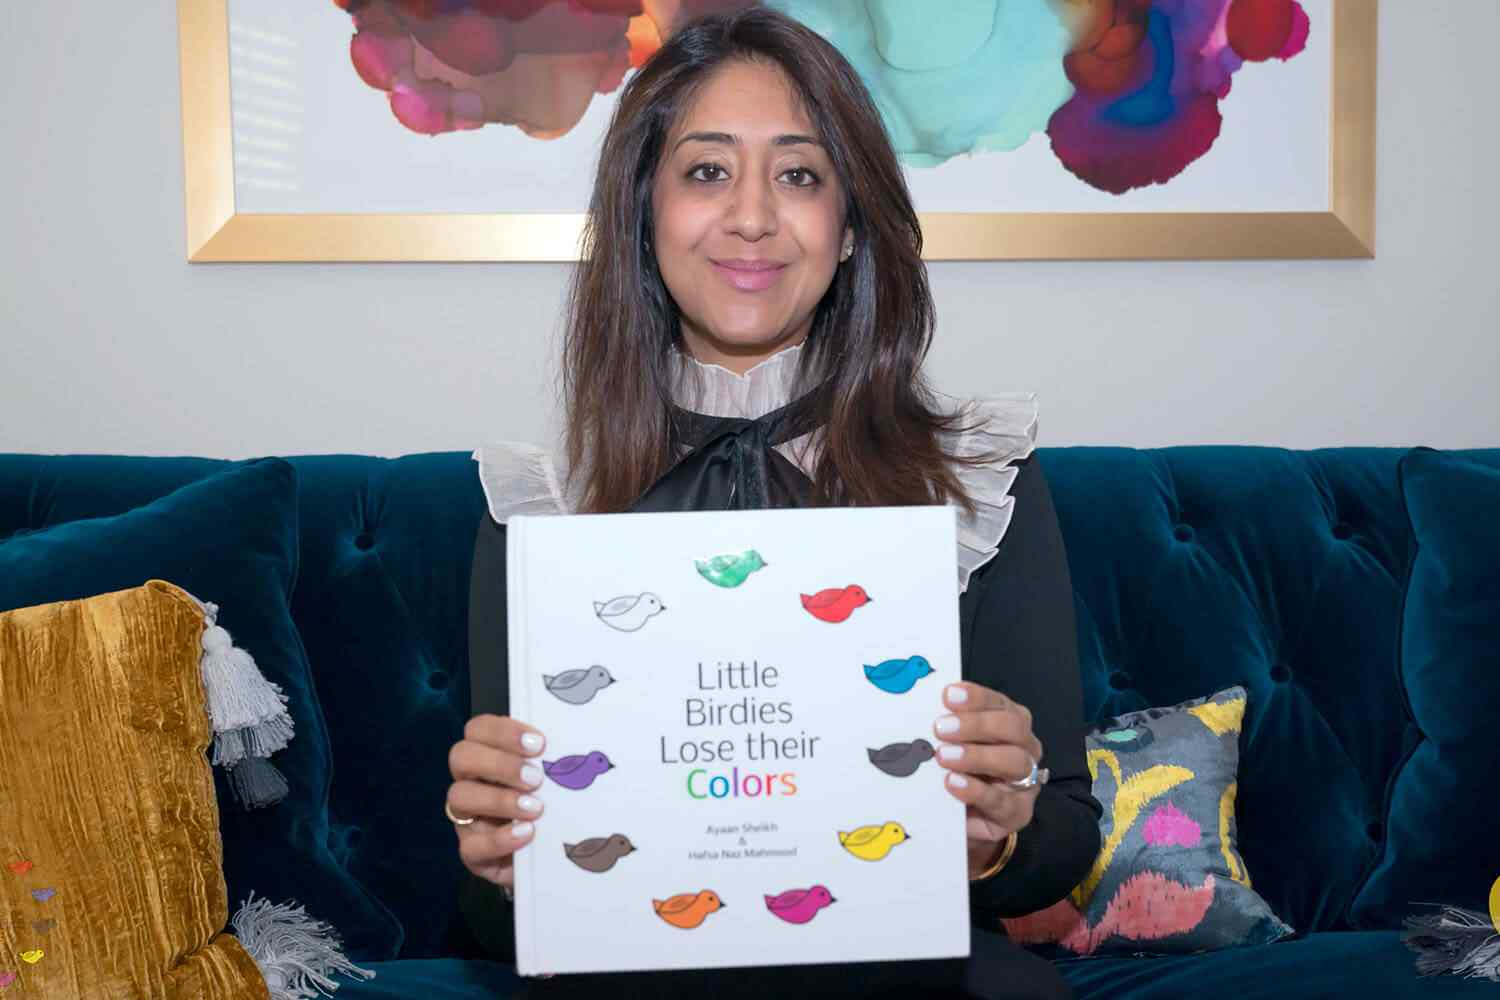 Little Birdies Lose their Colors is a children's book about different colored birds who are the greatest of friends. We helped the authors launch their website to sell their new book!